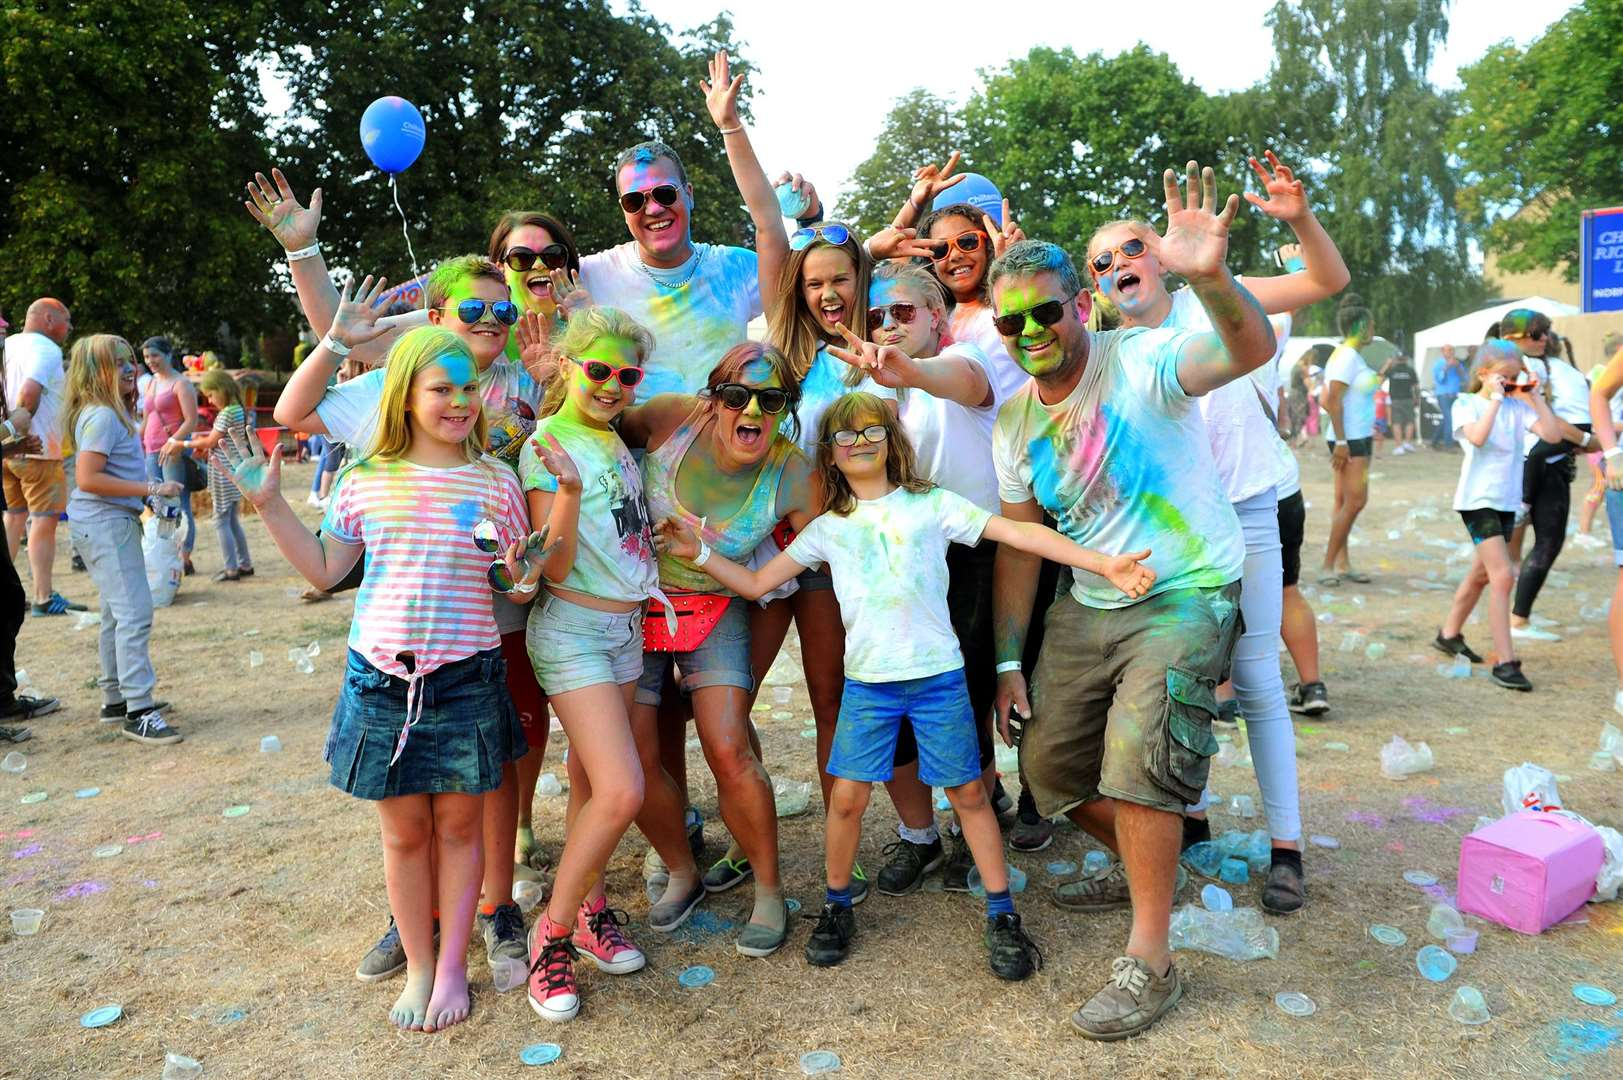 Families and friends of all ages enjoyed the colourful atmosphere of the day PICTURE: Mecha Morton